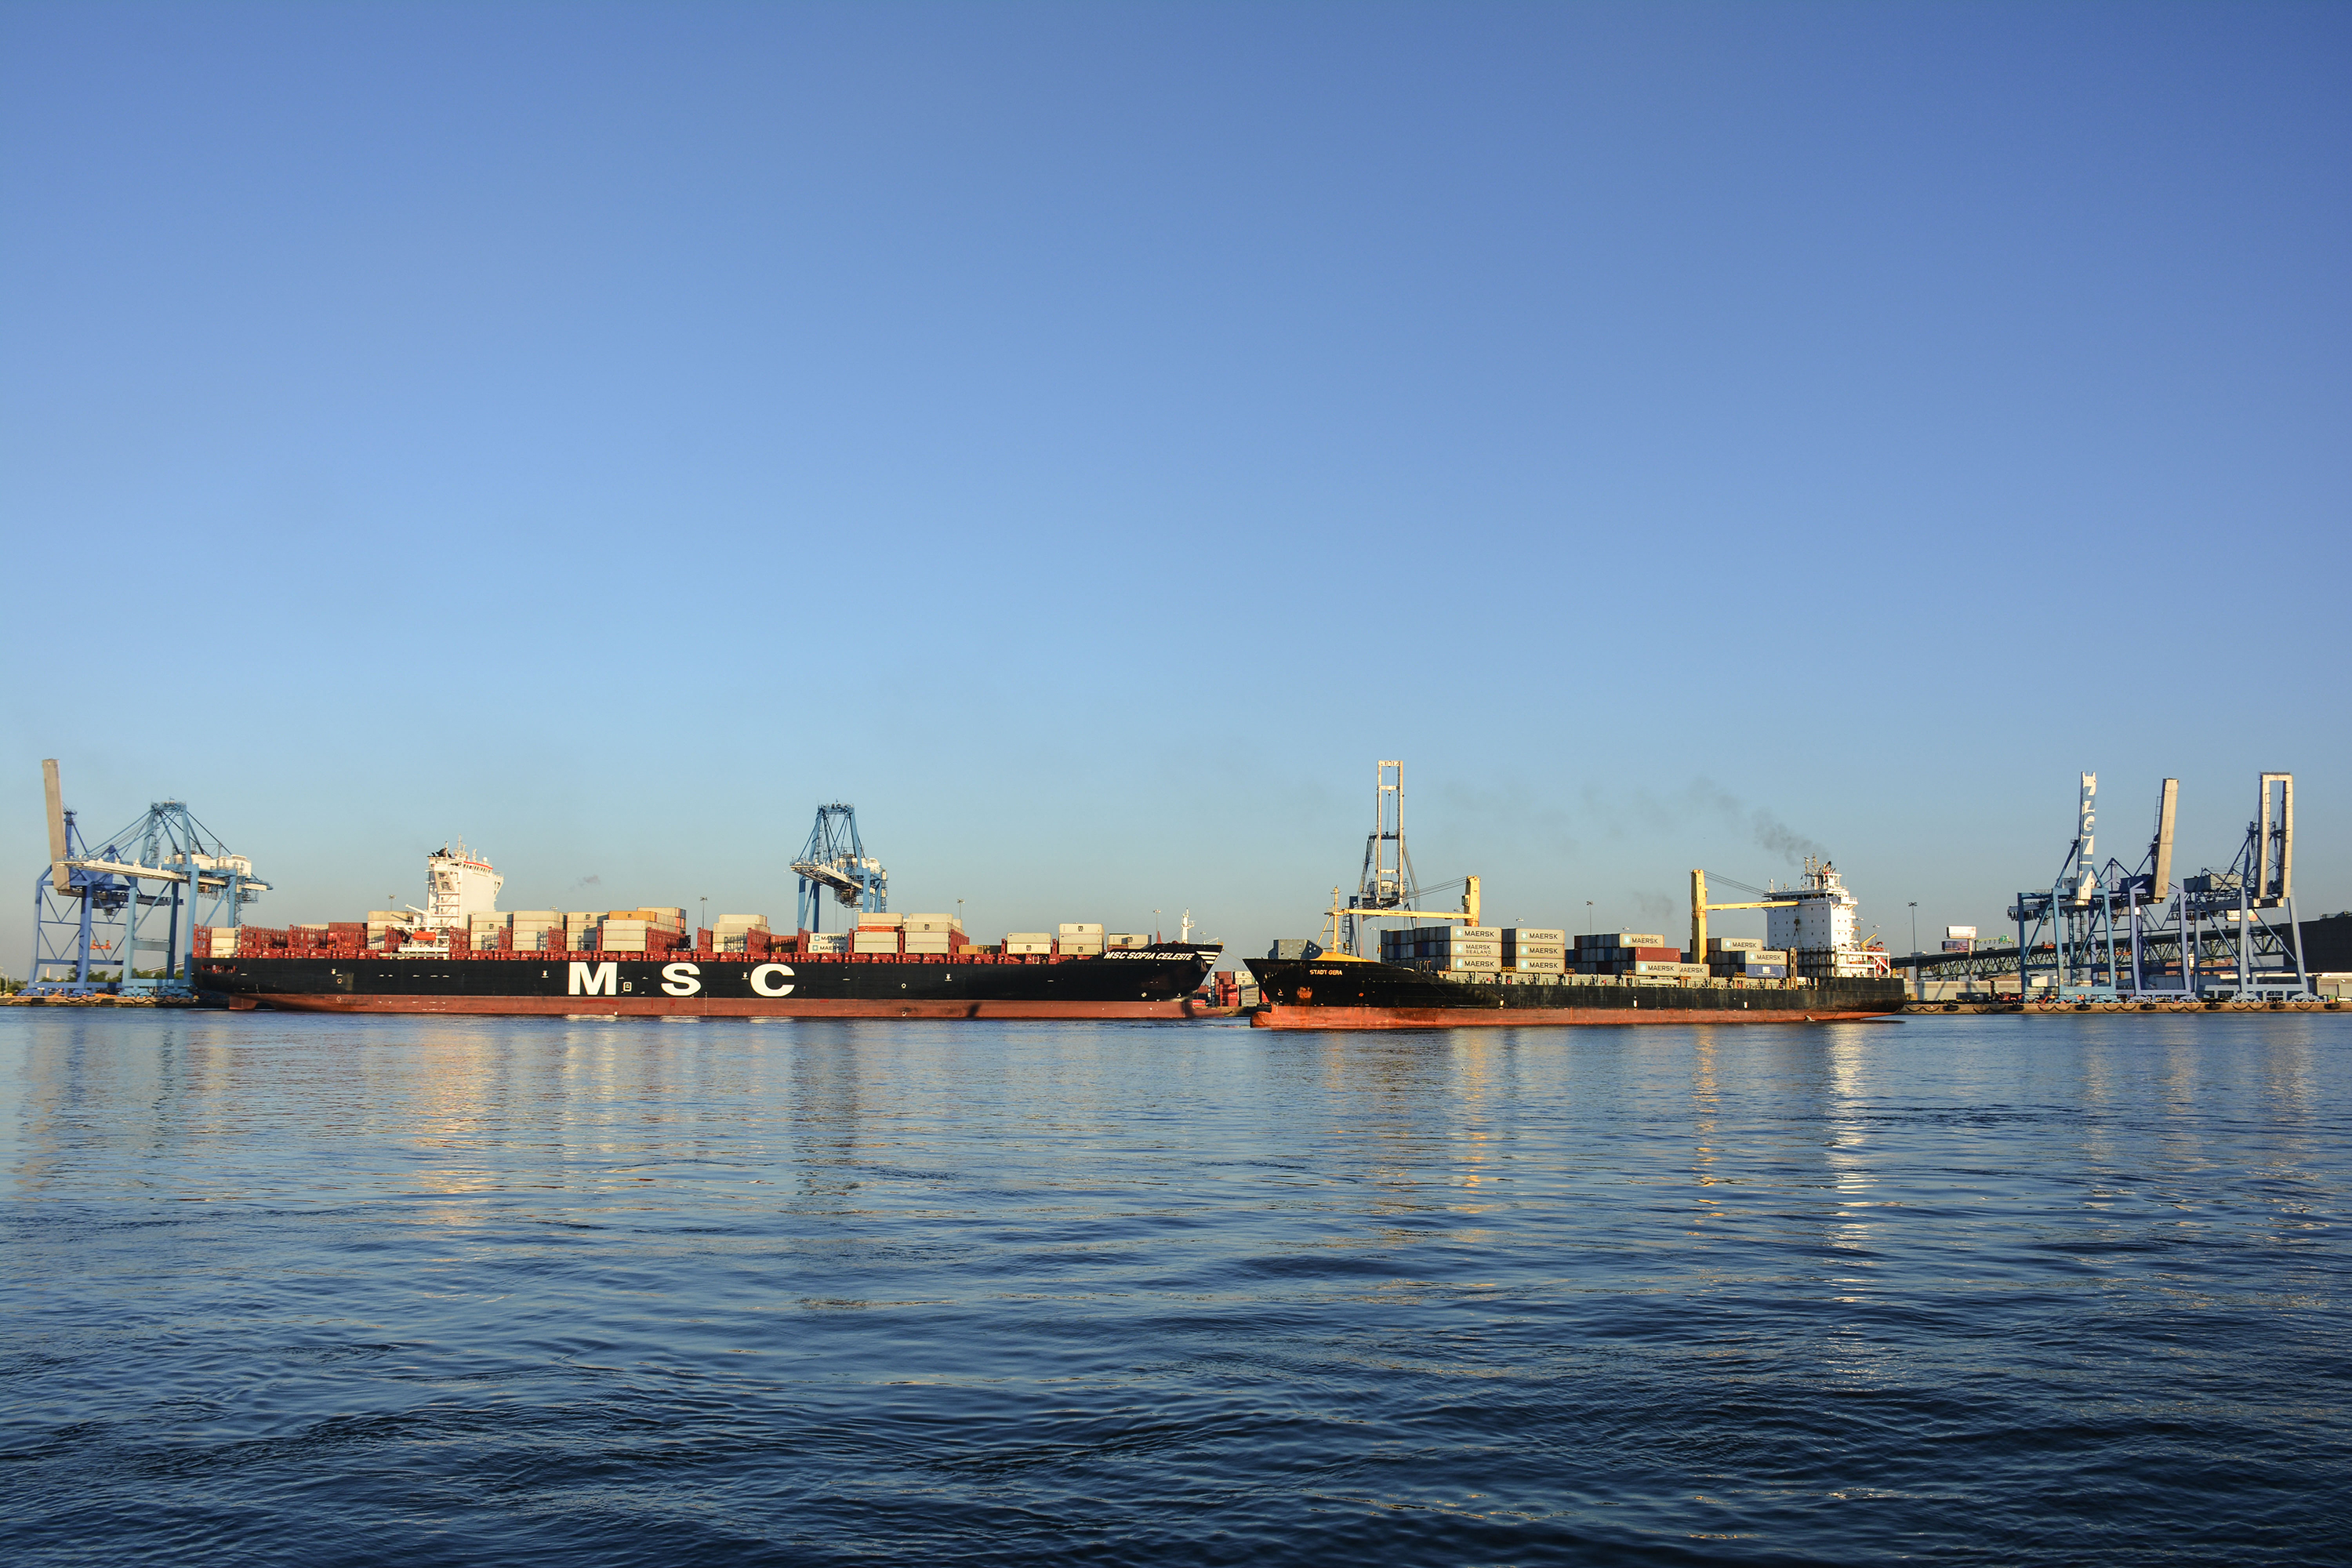 MSC Sofia Celeste (left), SeaLand Stadt Gera (right) - at Port Philadelphia's Packer Avenue Marine Terminal